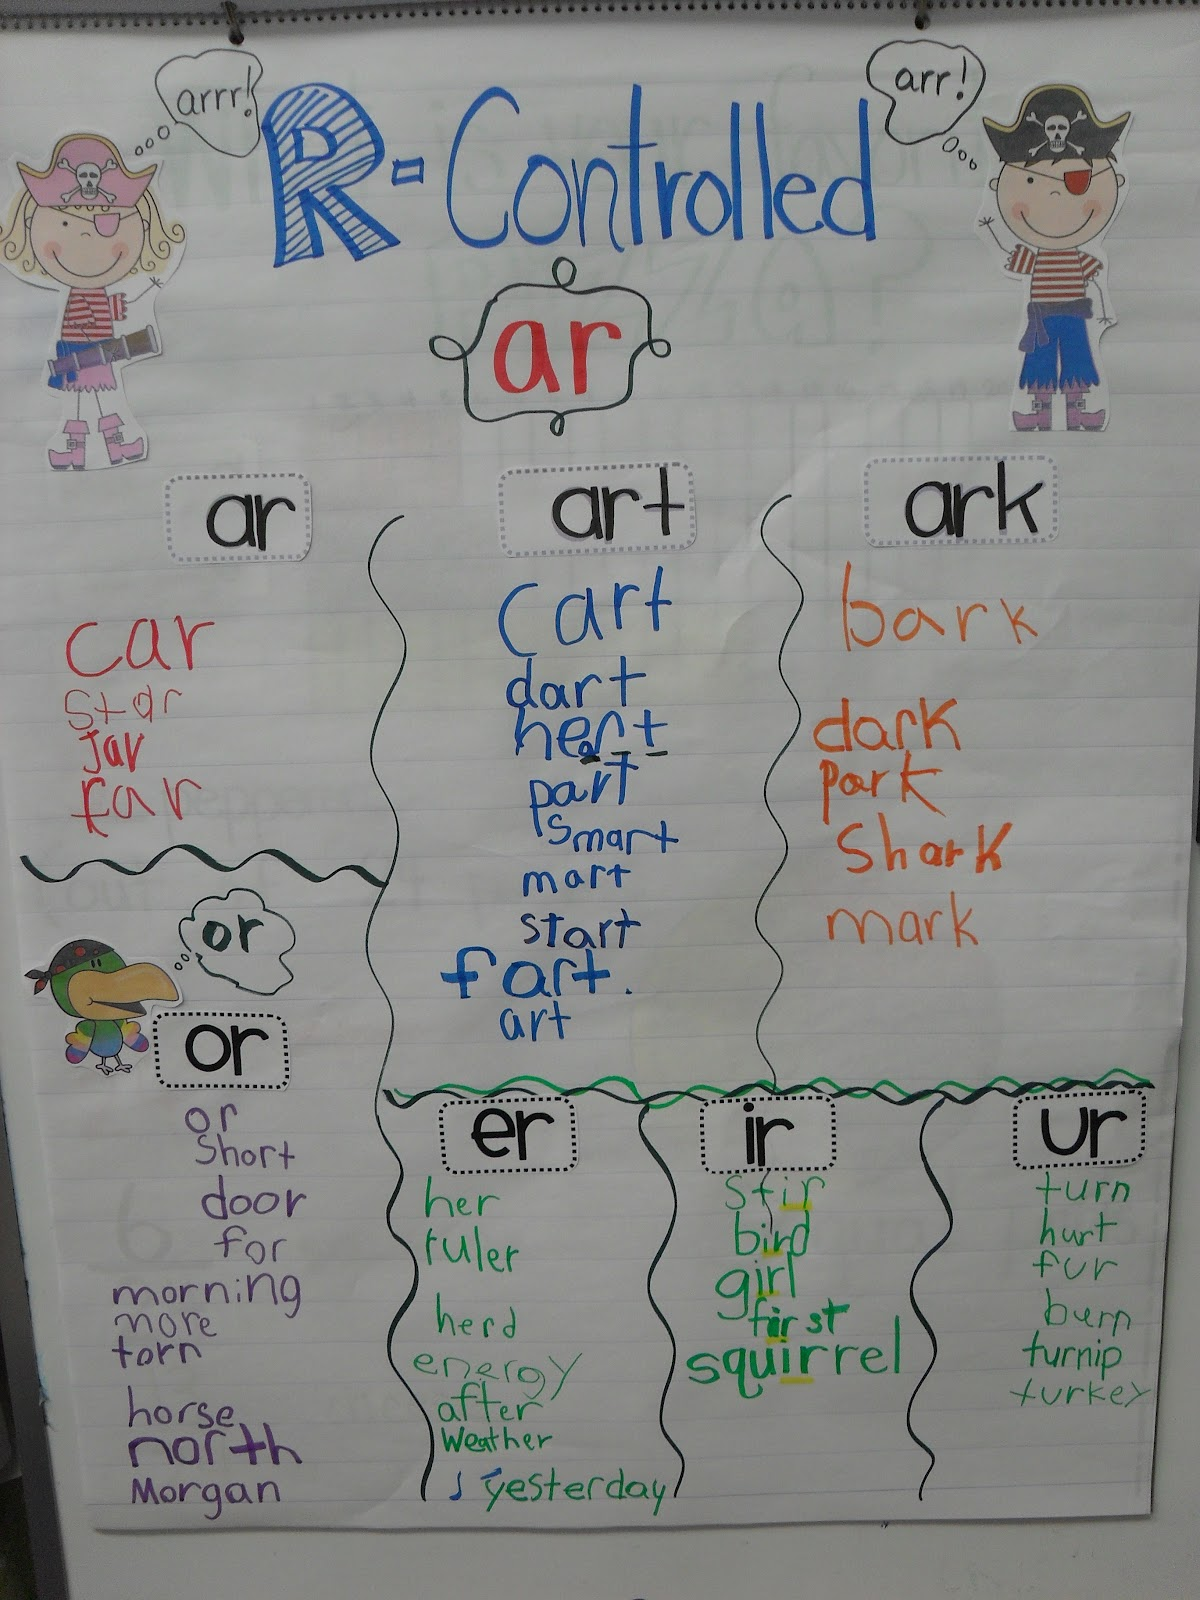 Seaside Alphabet Challenge additionally Original additionally Spelling Bee Parent Letter Rules And Lists Lva App Thumbnail furthermore B A B D A Fb Af F B Bd besides Expanded Form To. on first grade challenge spelling words